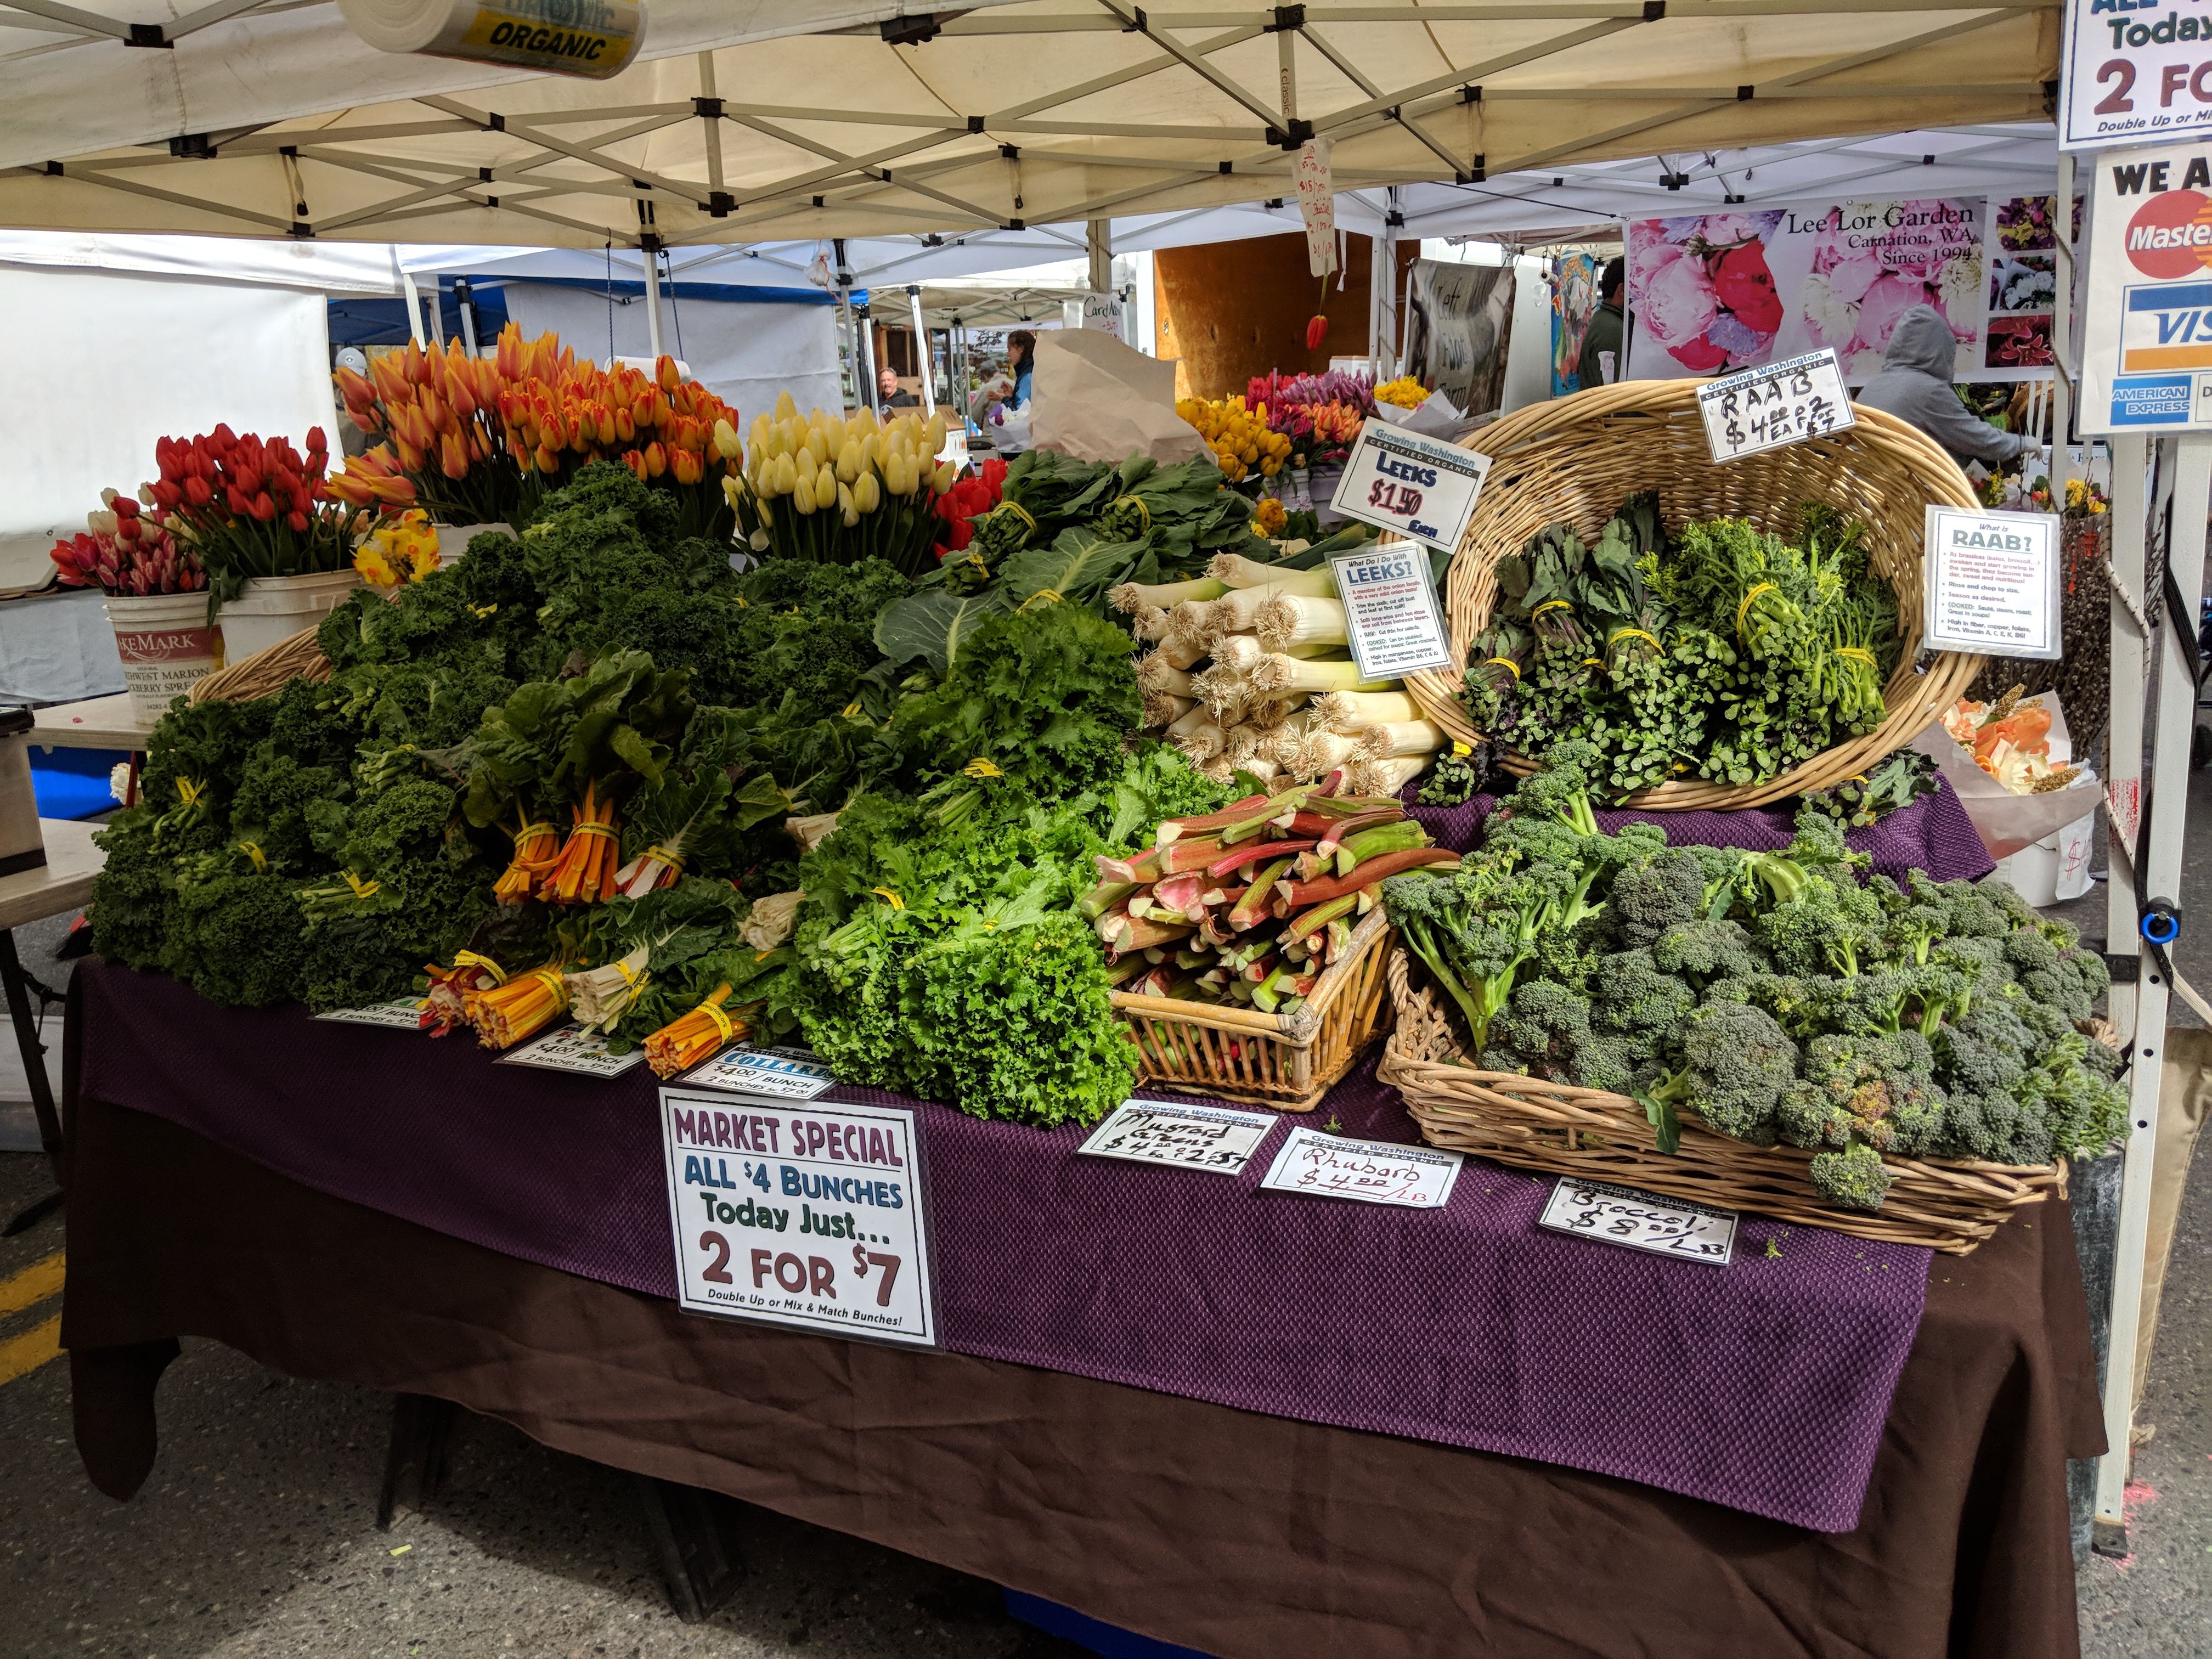 west seattle farmers market sunday produce vegetable stand